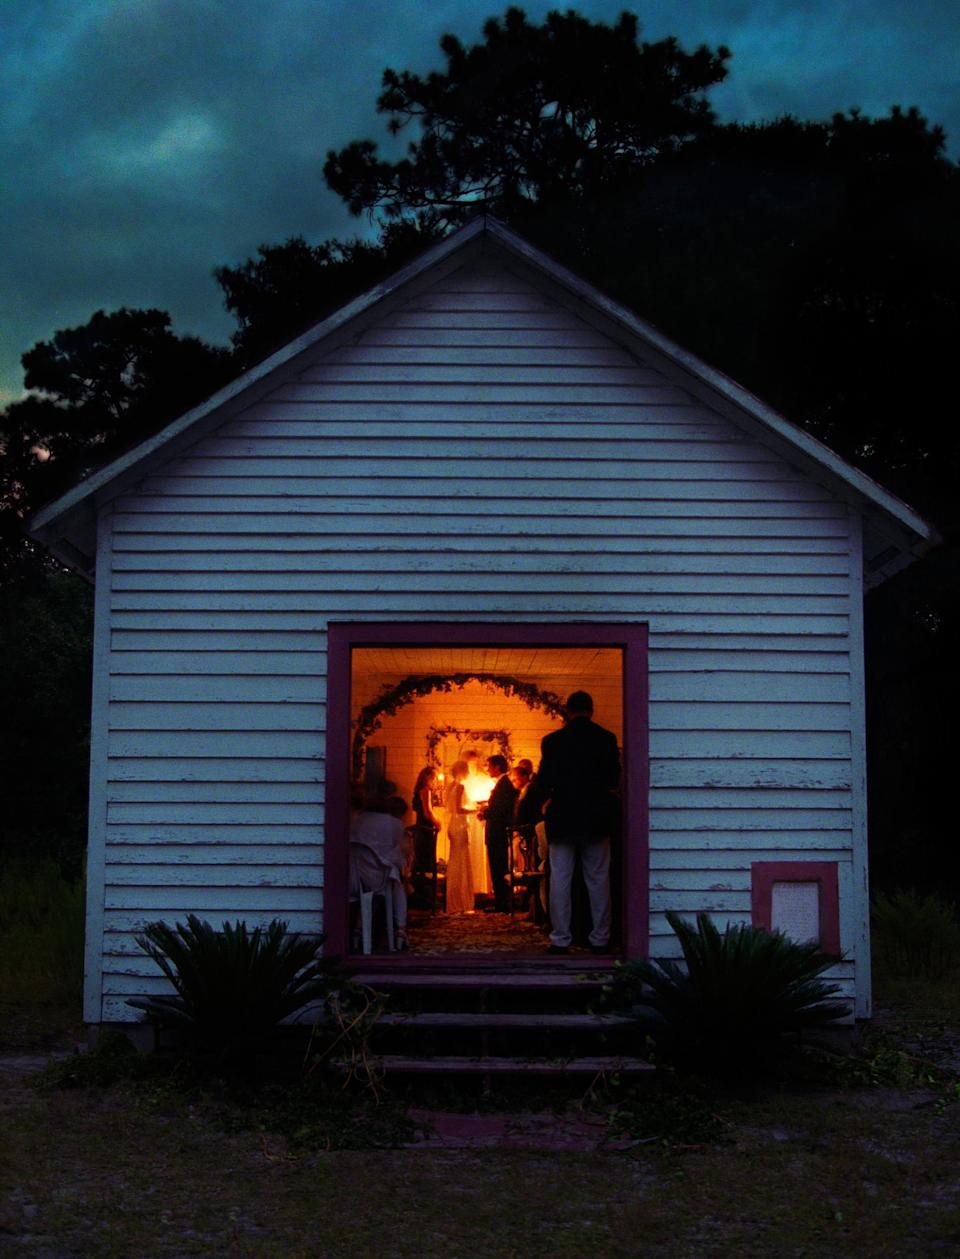 The First African Baptist Church on Georgia's Cumberland Island, where JFK Jr. and Carolyn Bessette exchanged vows. (Denis Reggie)